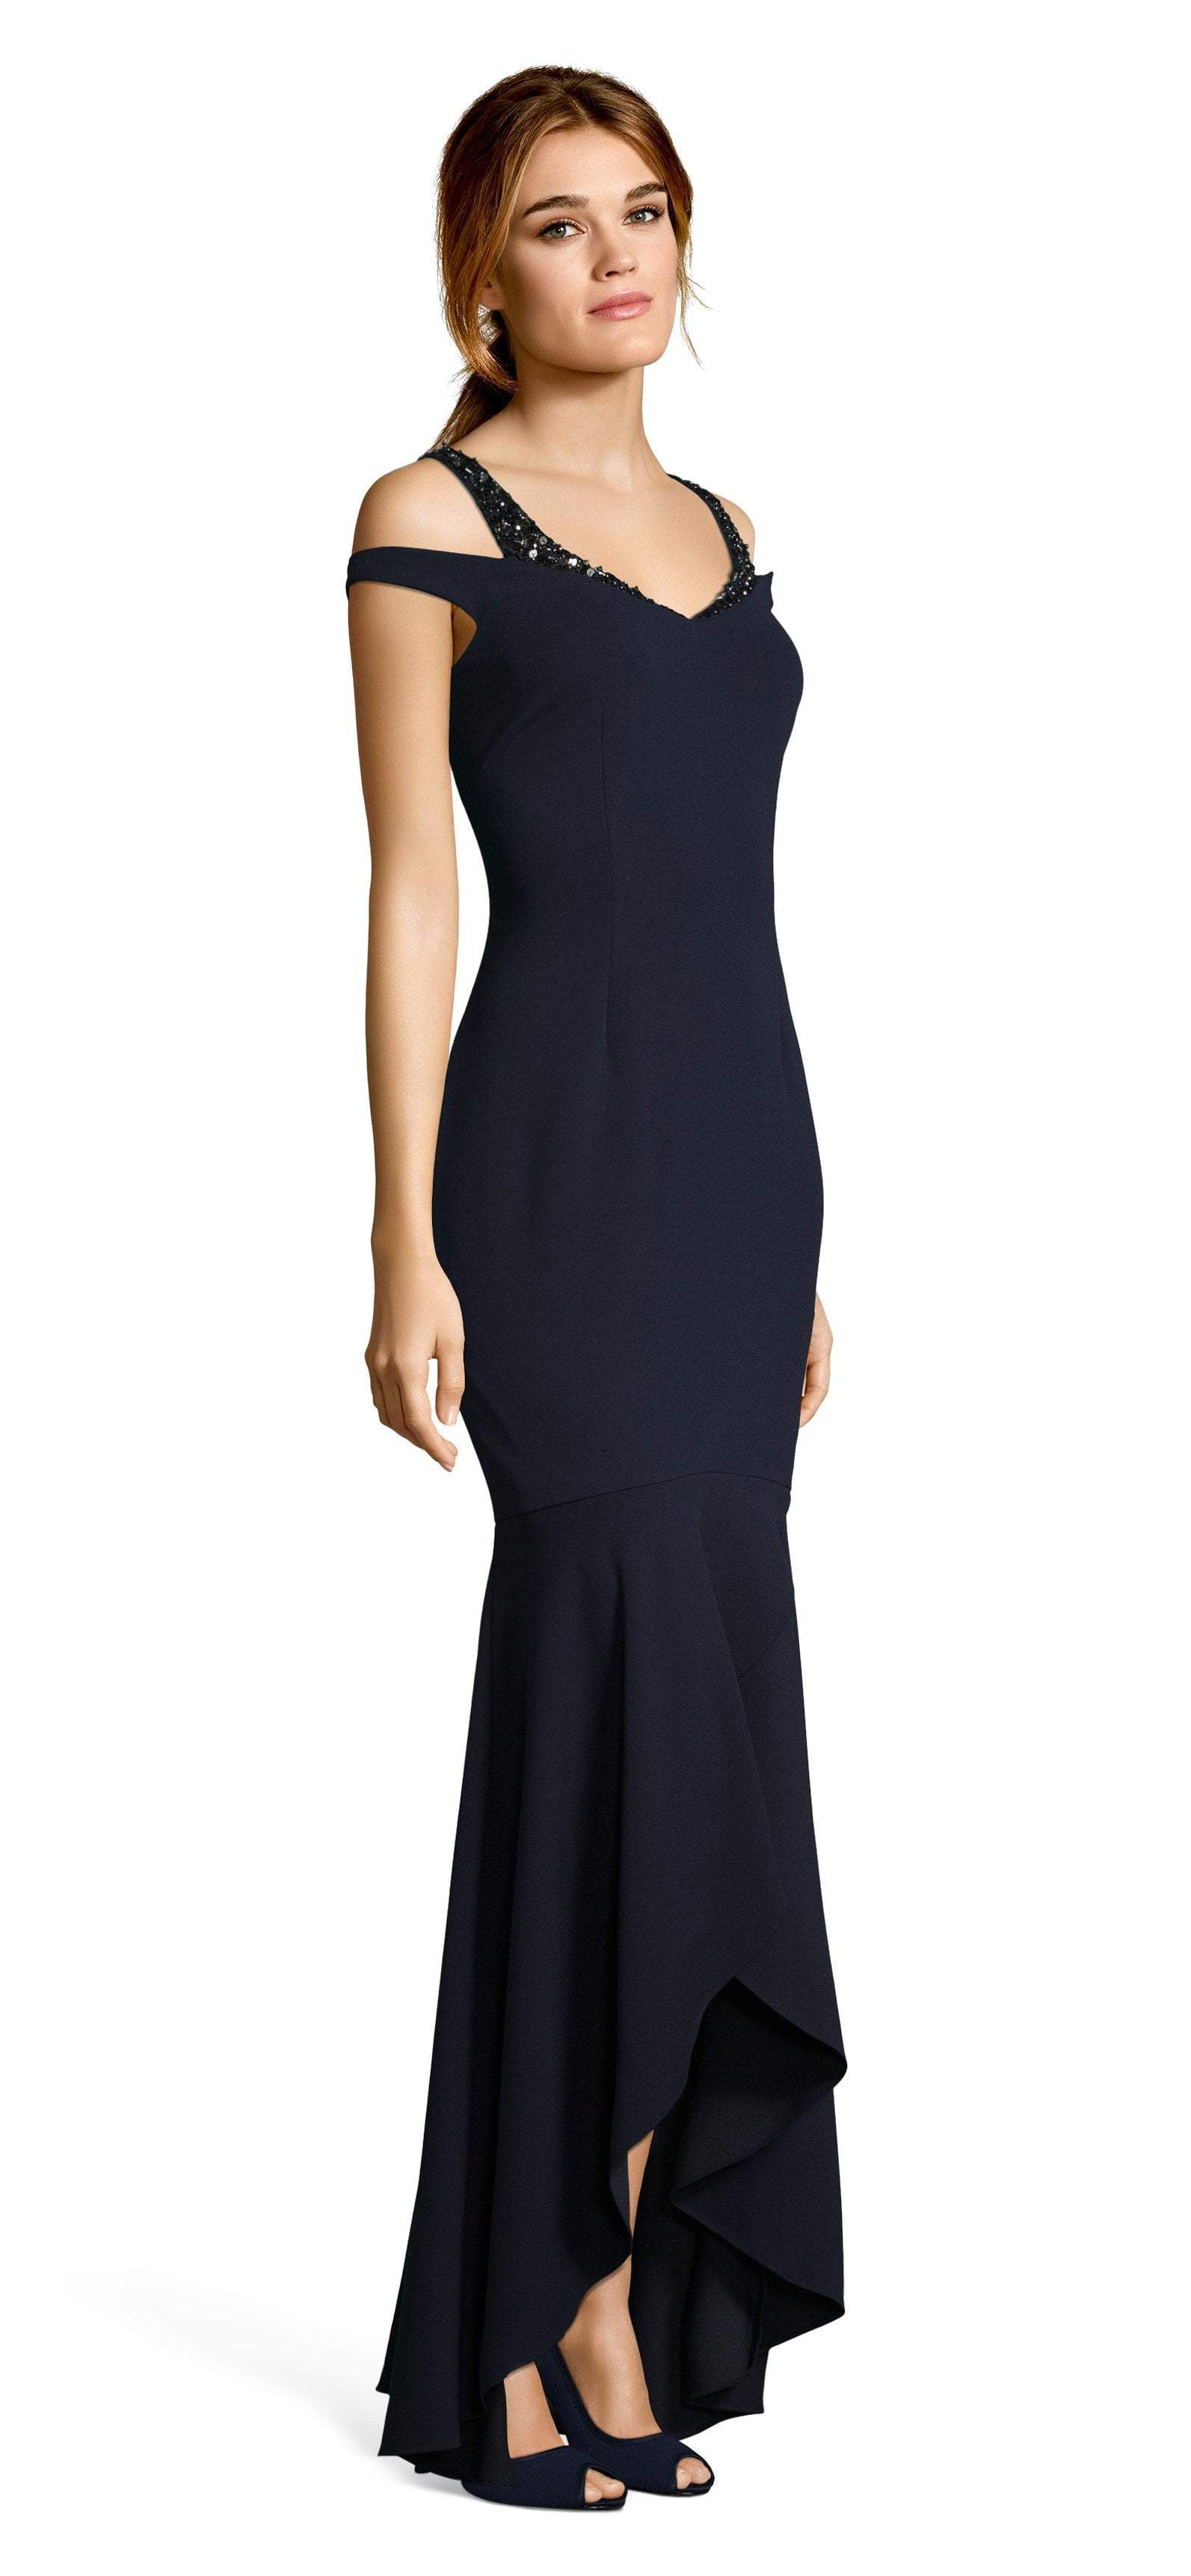 Adrianna Papell - AP1E202959 V-Neck Fitted Trumpet High Low Dress In Blue